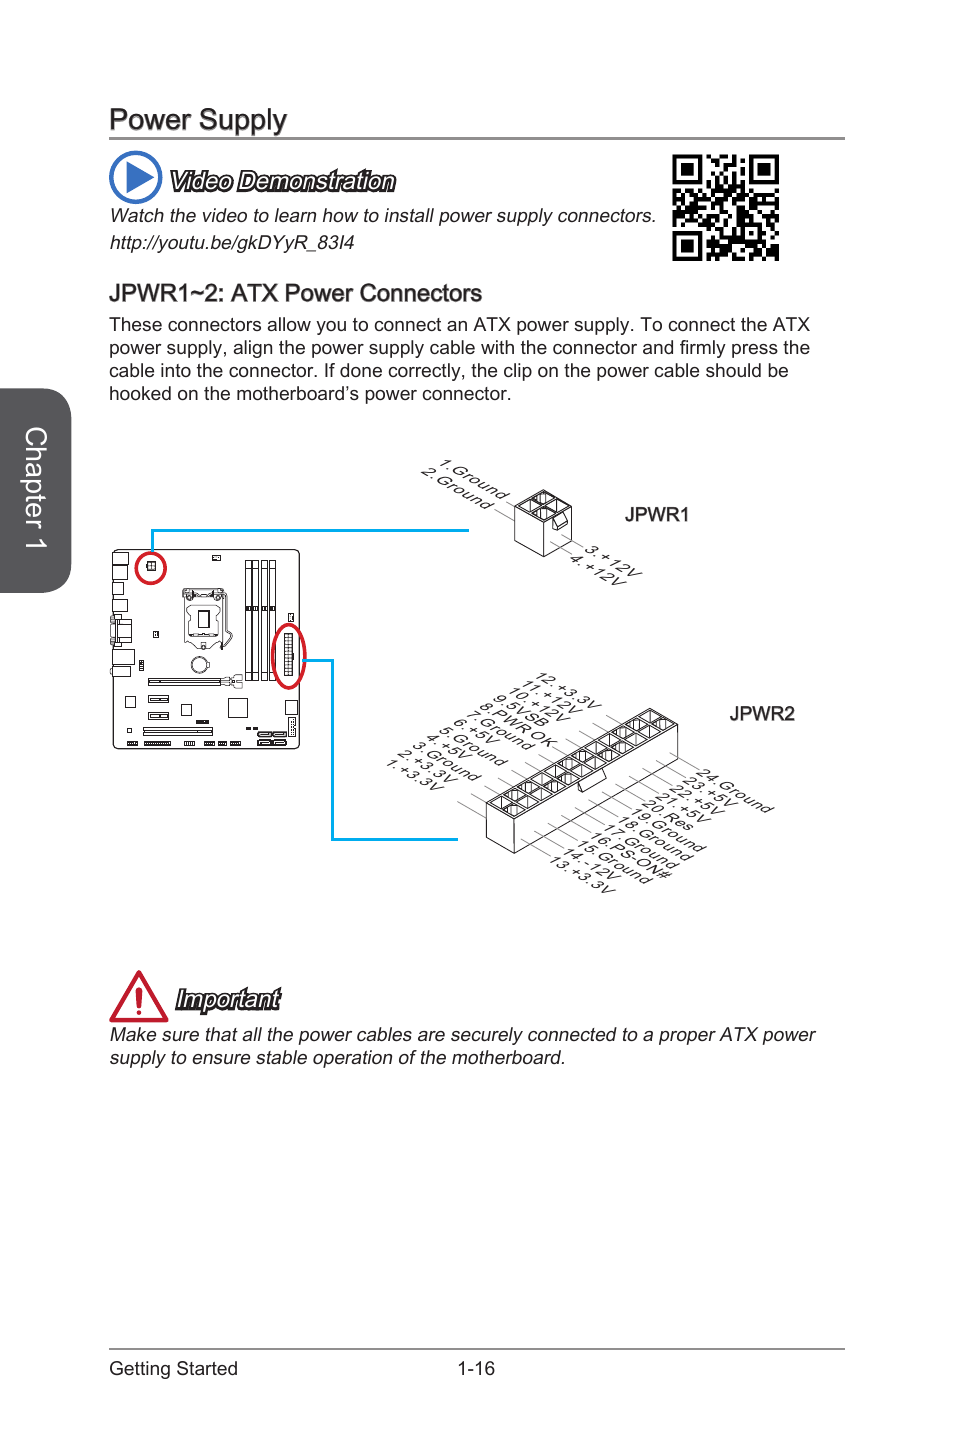 power supply jpwr1 2 atx power connectors power supply 16 msi rh manualsdir com atx power supply manual atx power supply manual